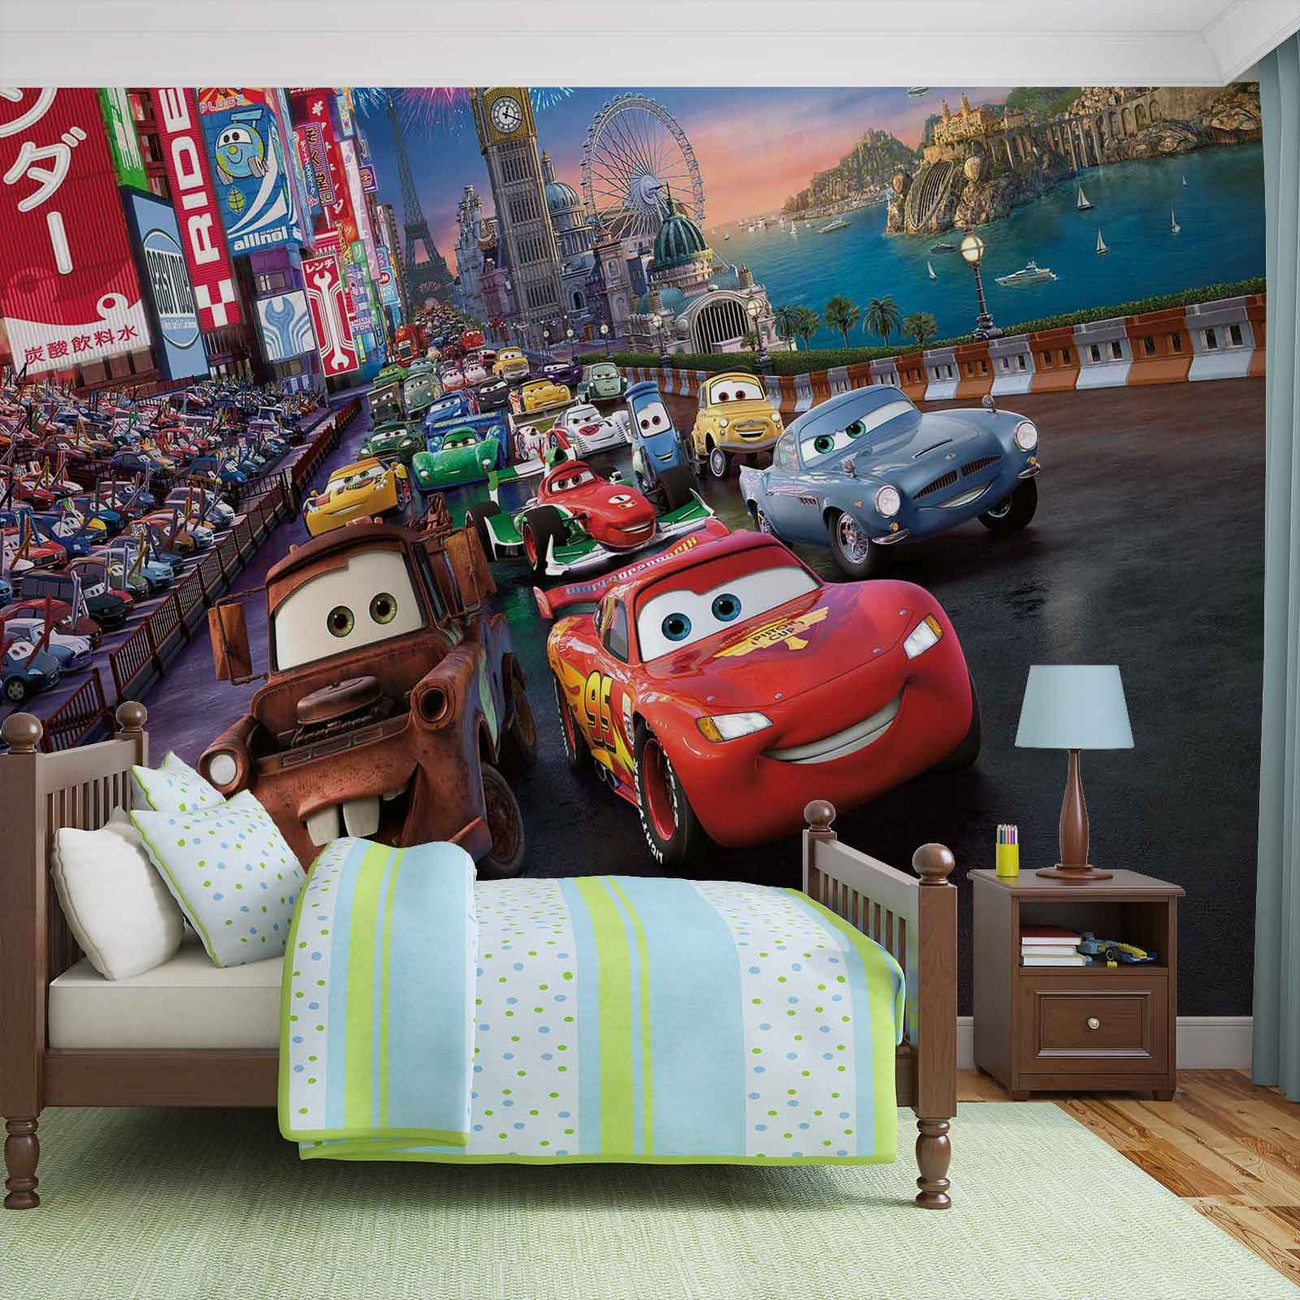 Disney cars lightning mcqueen mater wall paper mural buy for Disney cars wall mural